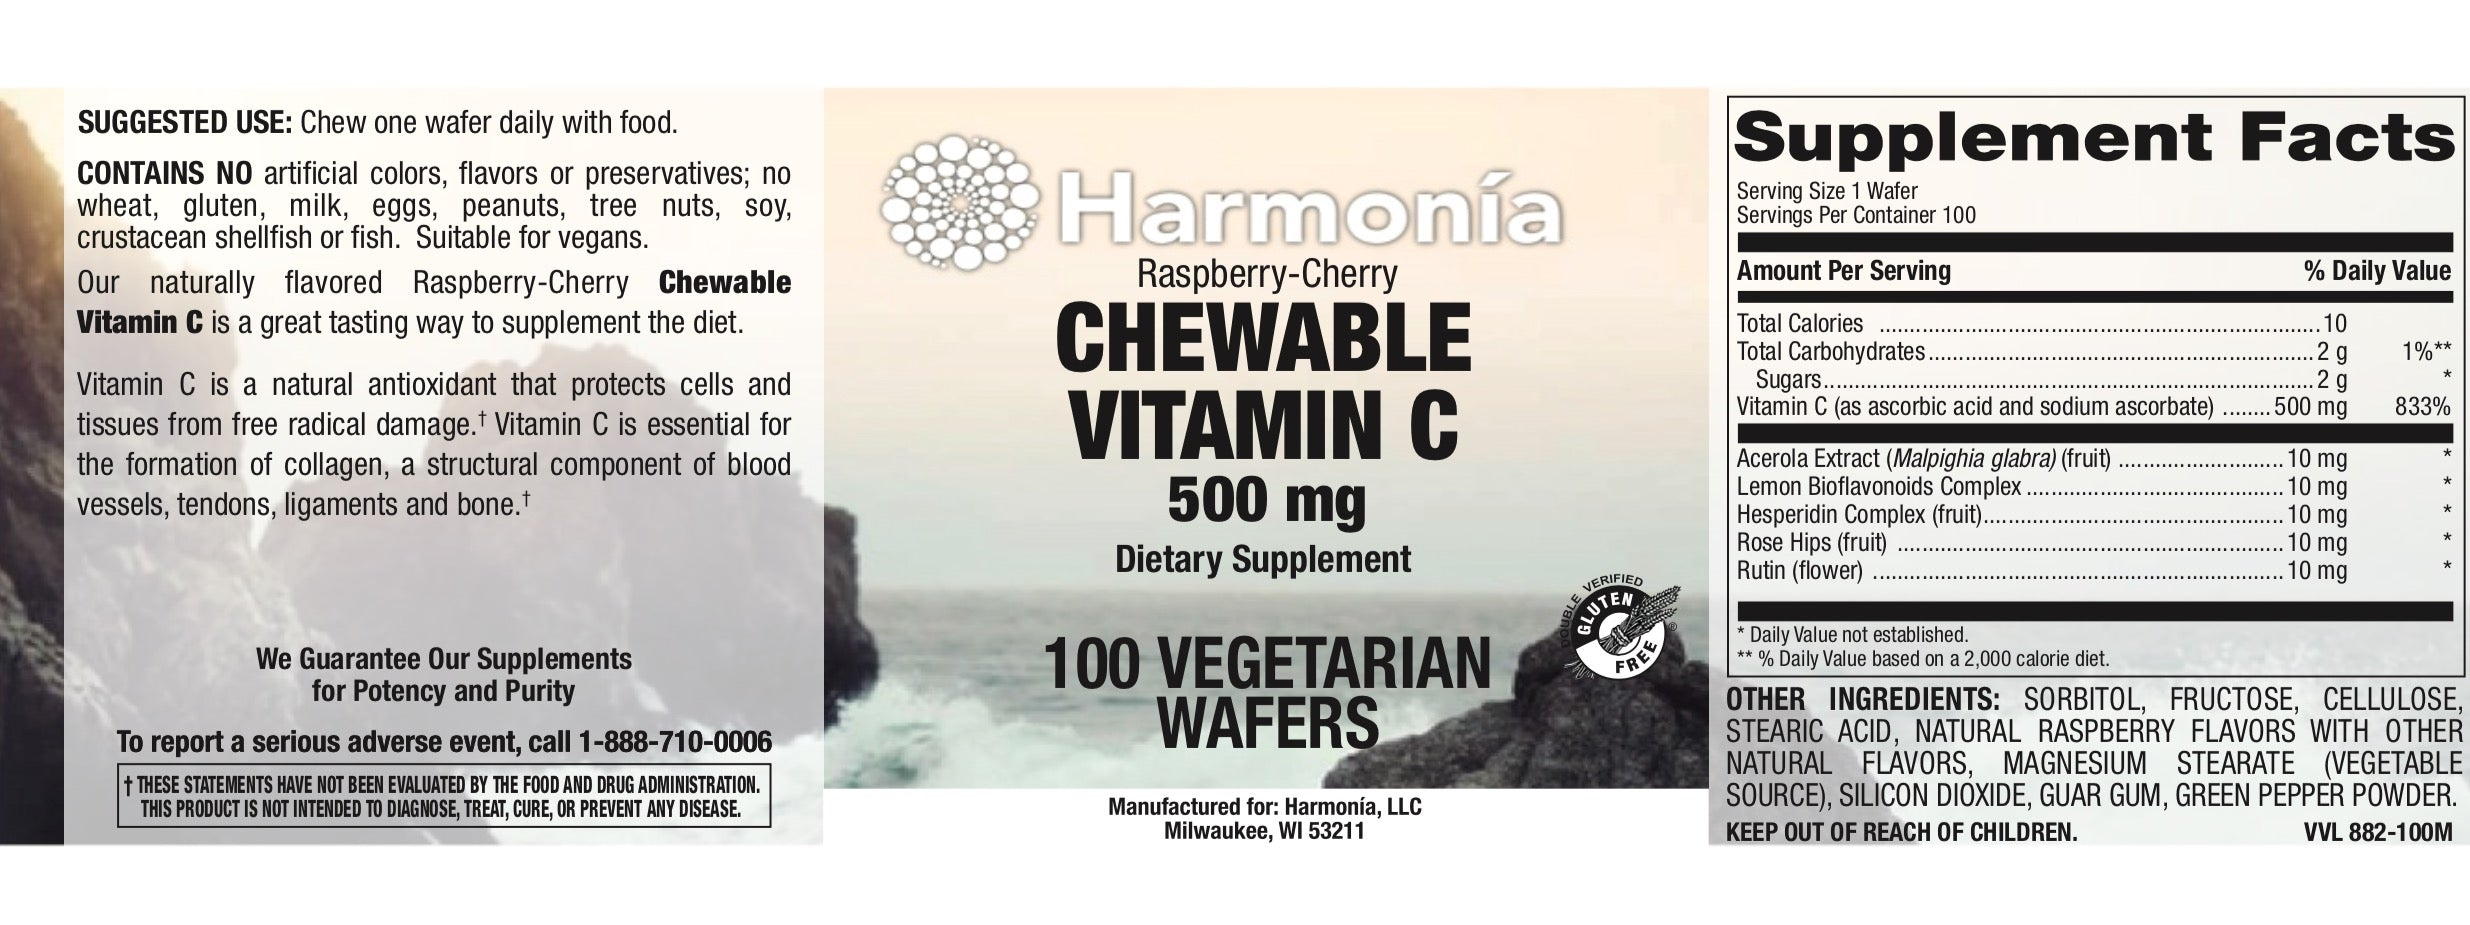 Chewable Vitamin C (Sweet & Tart Raspberry-Cherry) 500mg